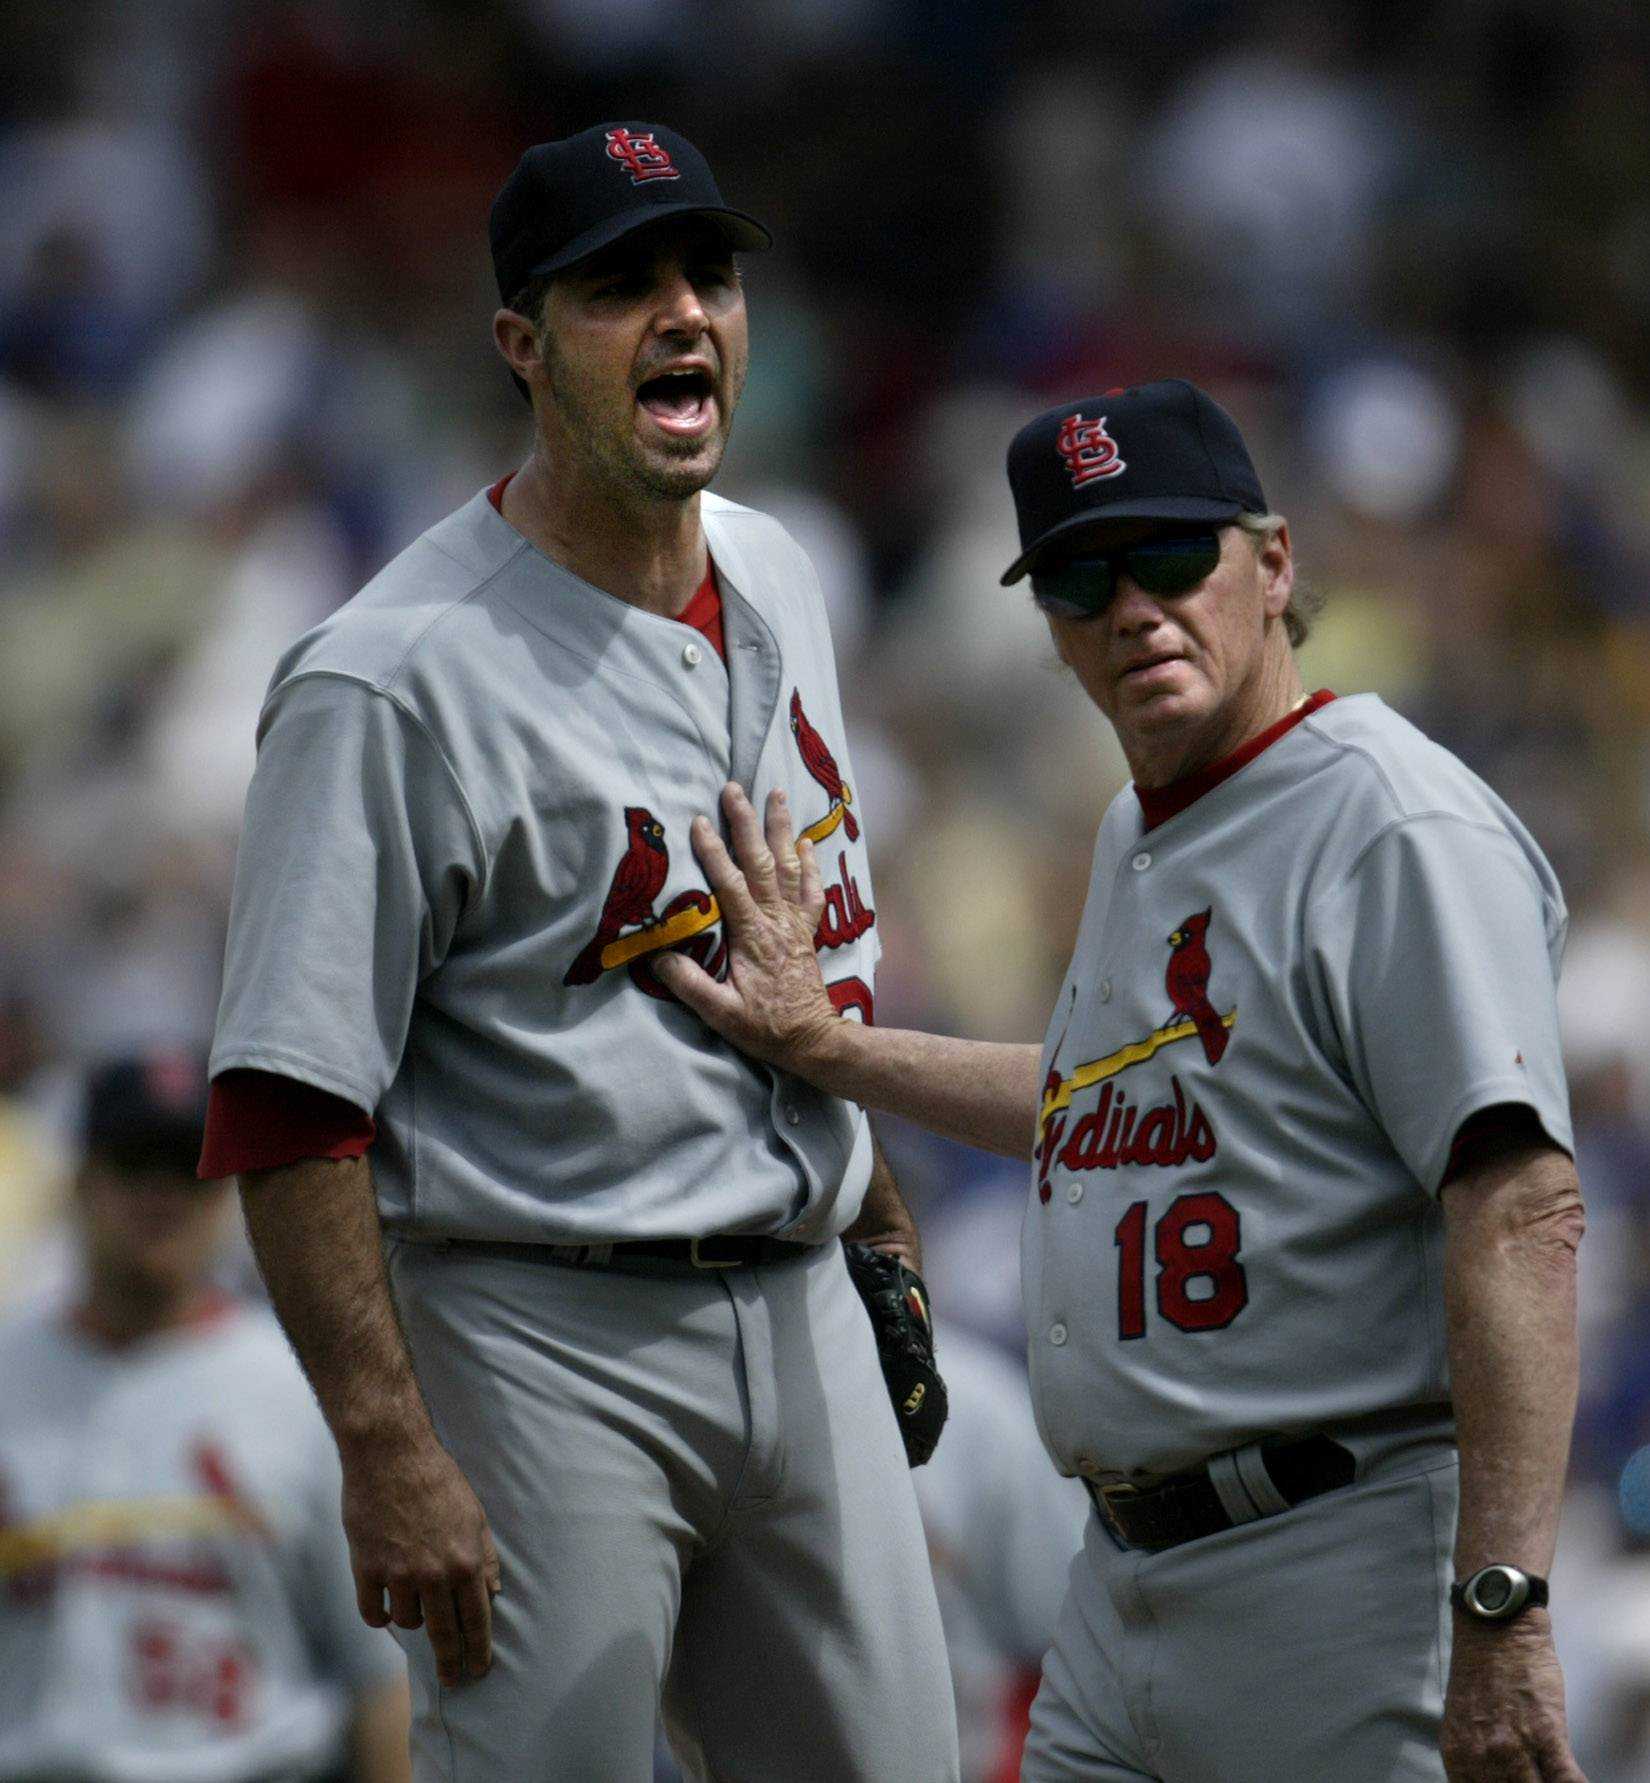 Cardinals pitching coach Dave Duncan holds back pitcher Matt Morris after after players returned to the dugout during a Cubs-Cardinals game, after a bench clearing. Duncan rejoined the White Sox on Thursday as a pitching consultant. Duncan, 72, was a major-league pitching coach for 32 years and was in the Sox's dugout from 1983-86.